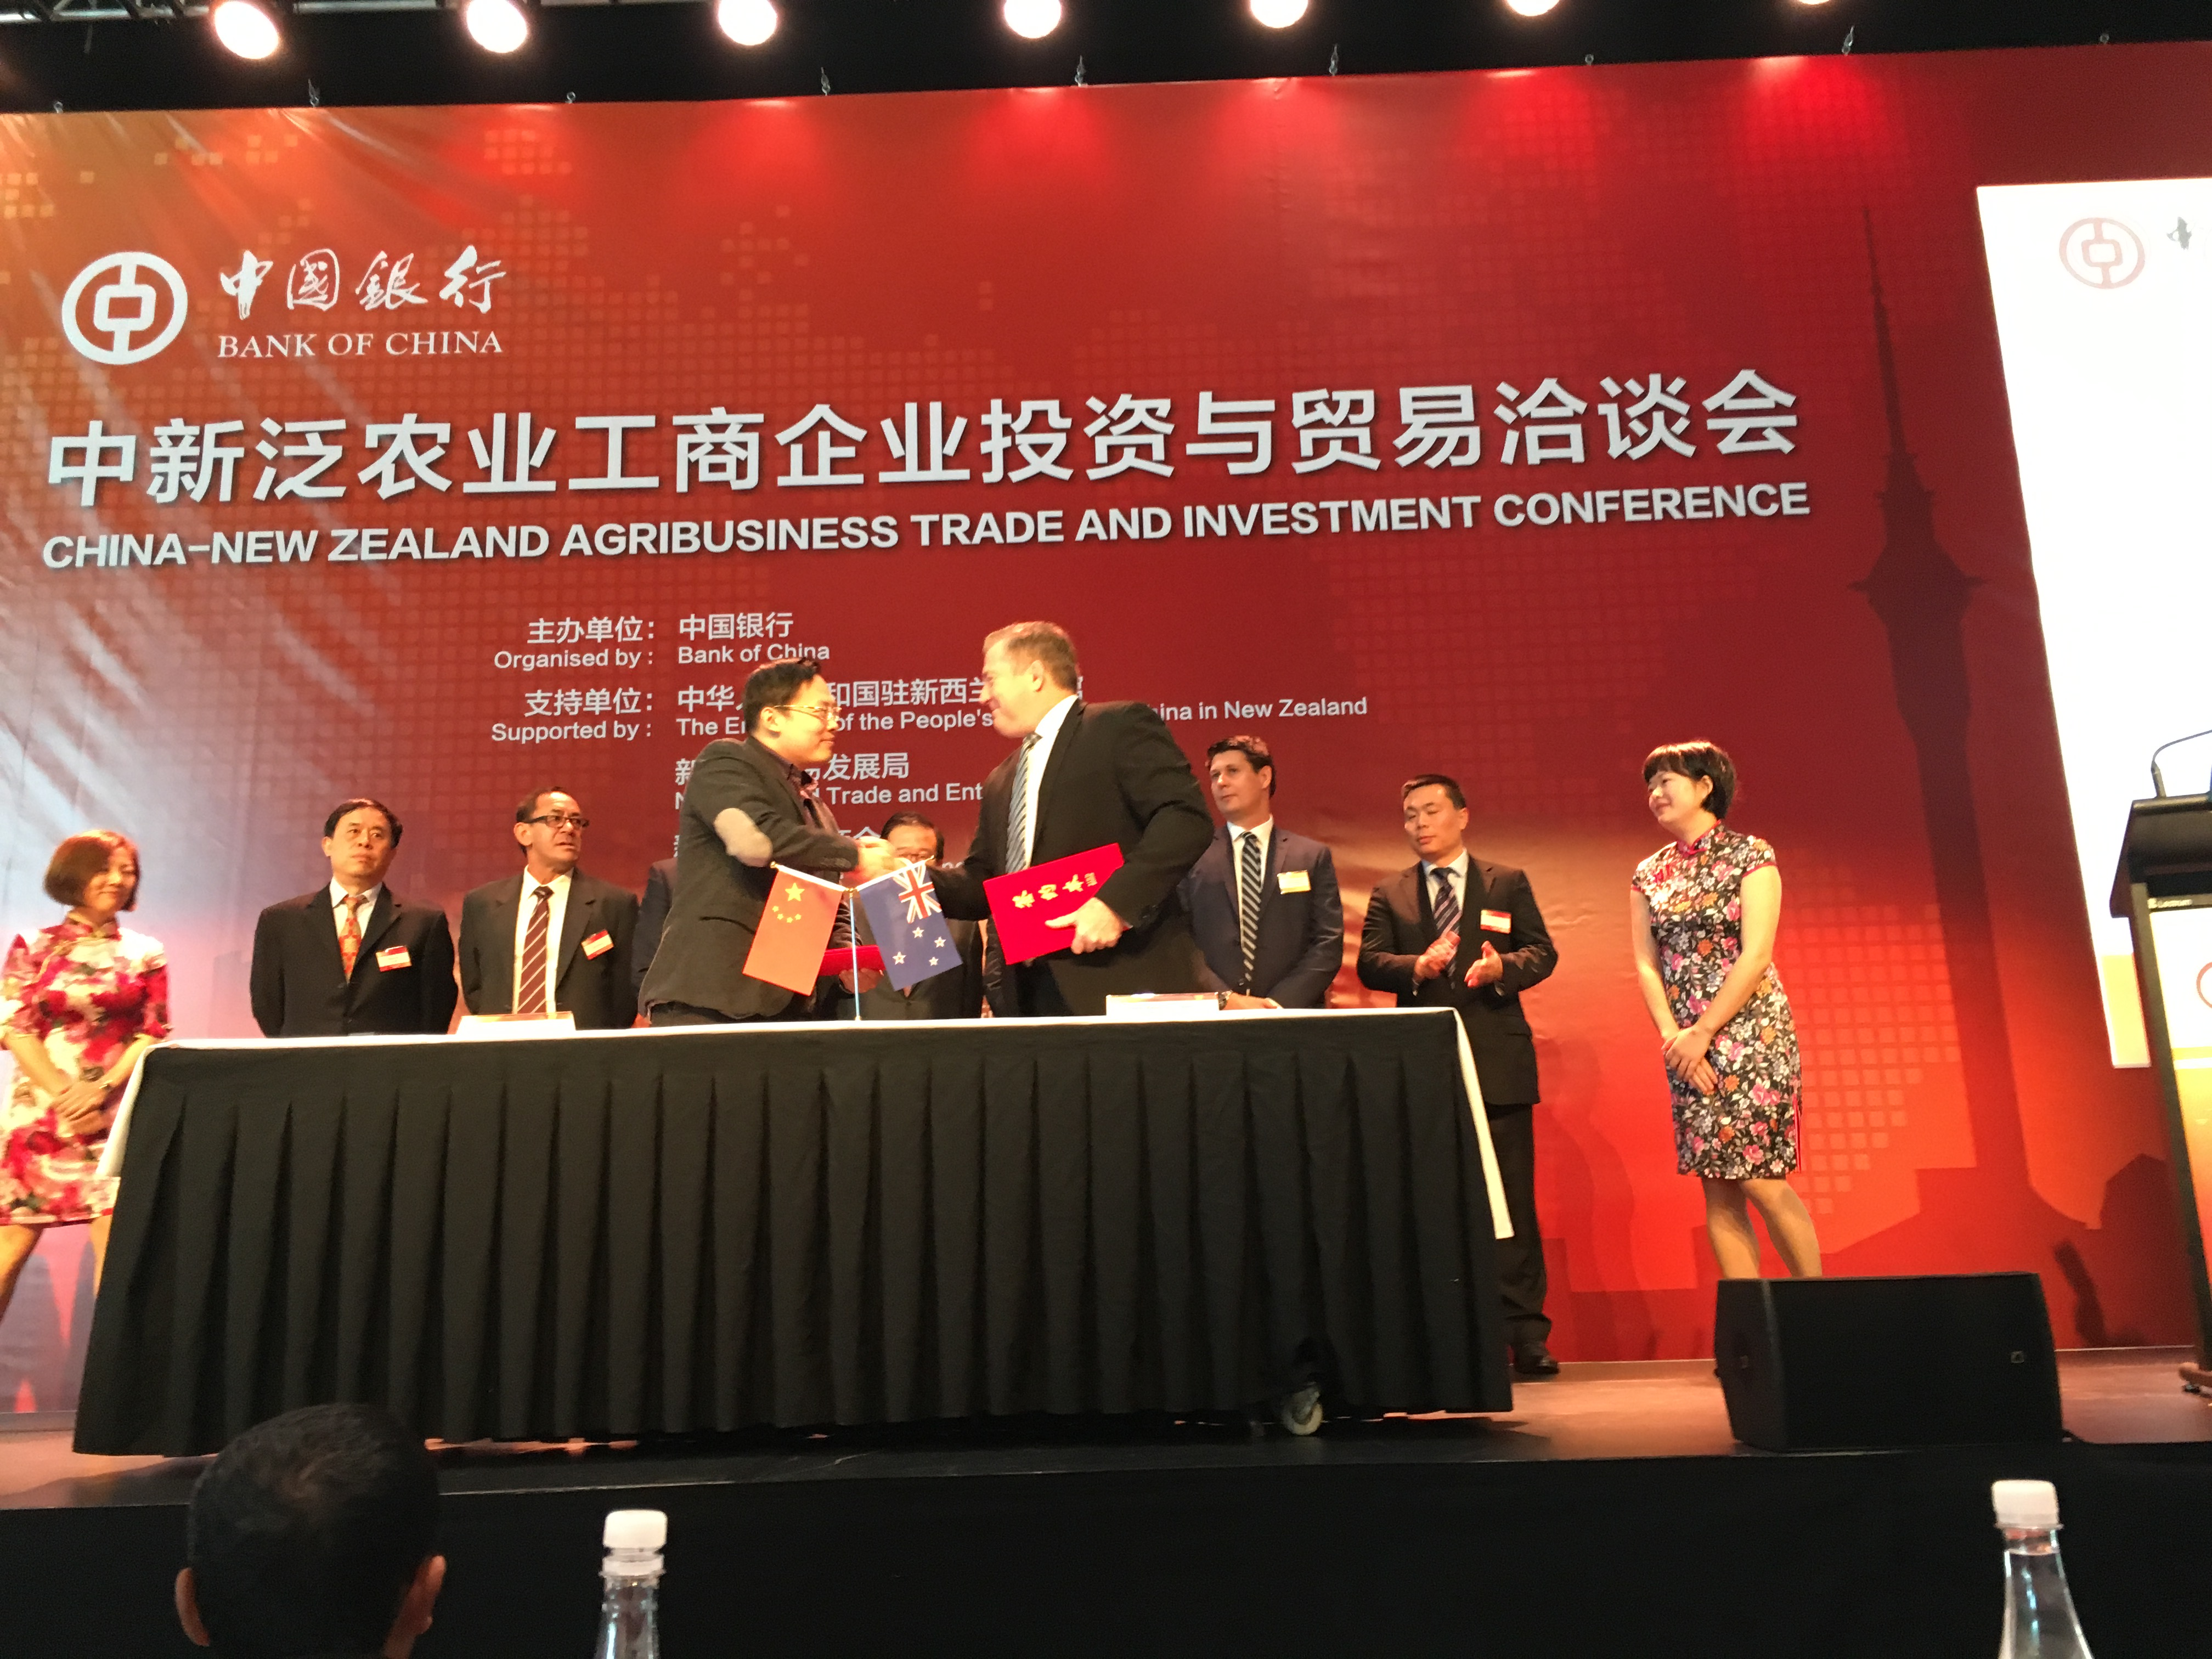 China-New Zealand Agribusiness Trade and Investment Conference